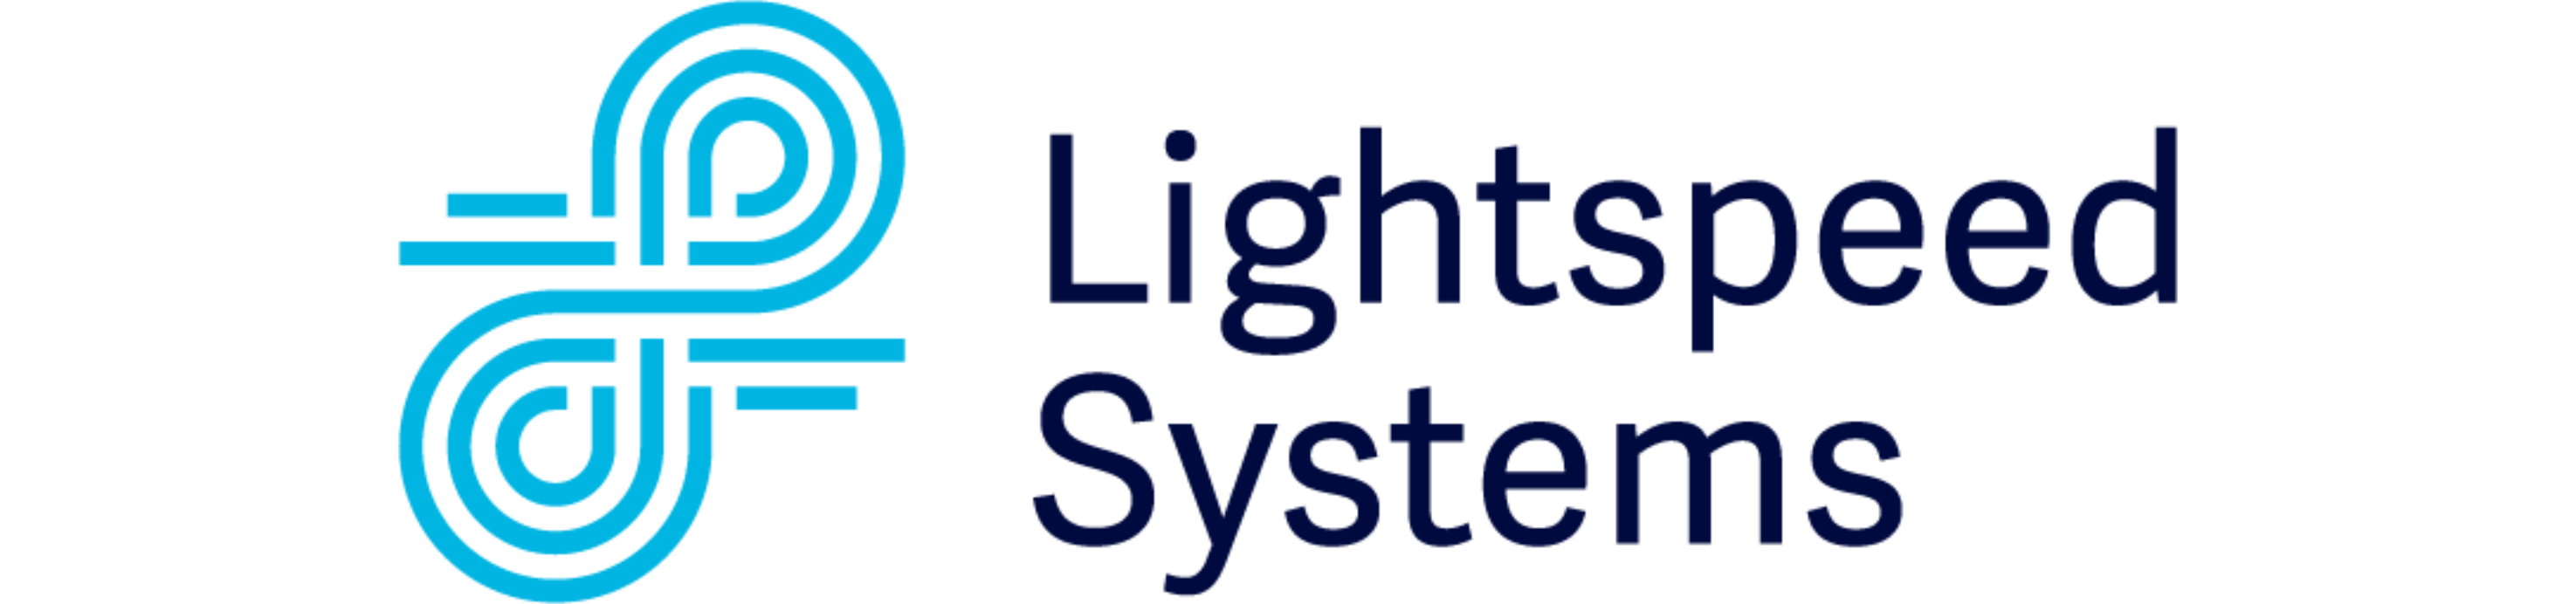 Lightspeed Systems - Authorised Reseller